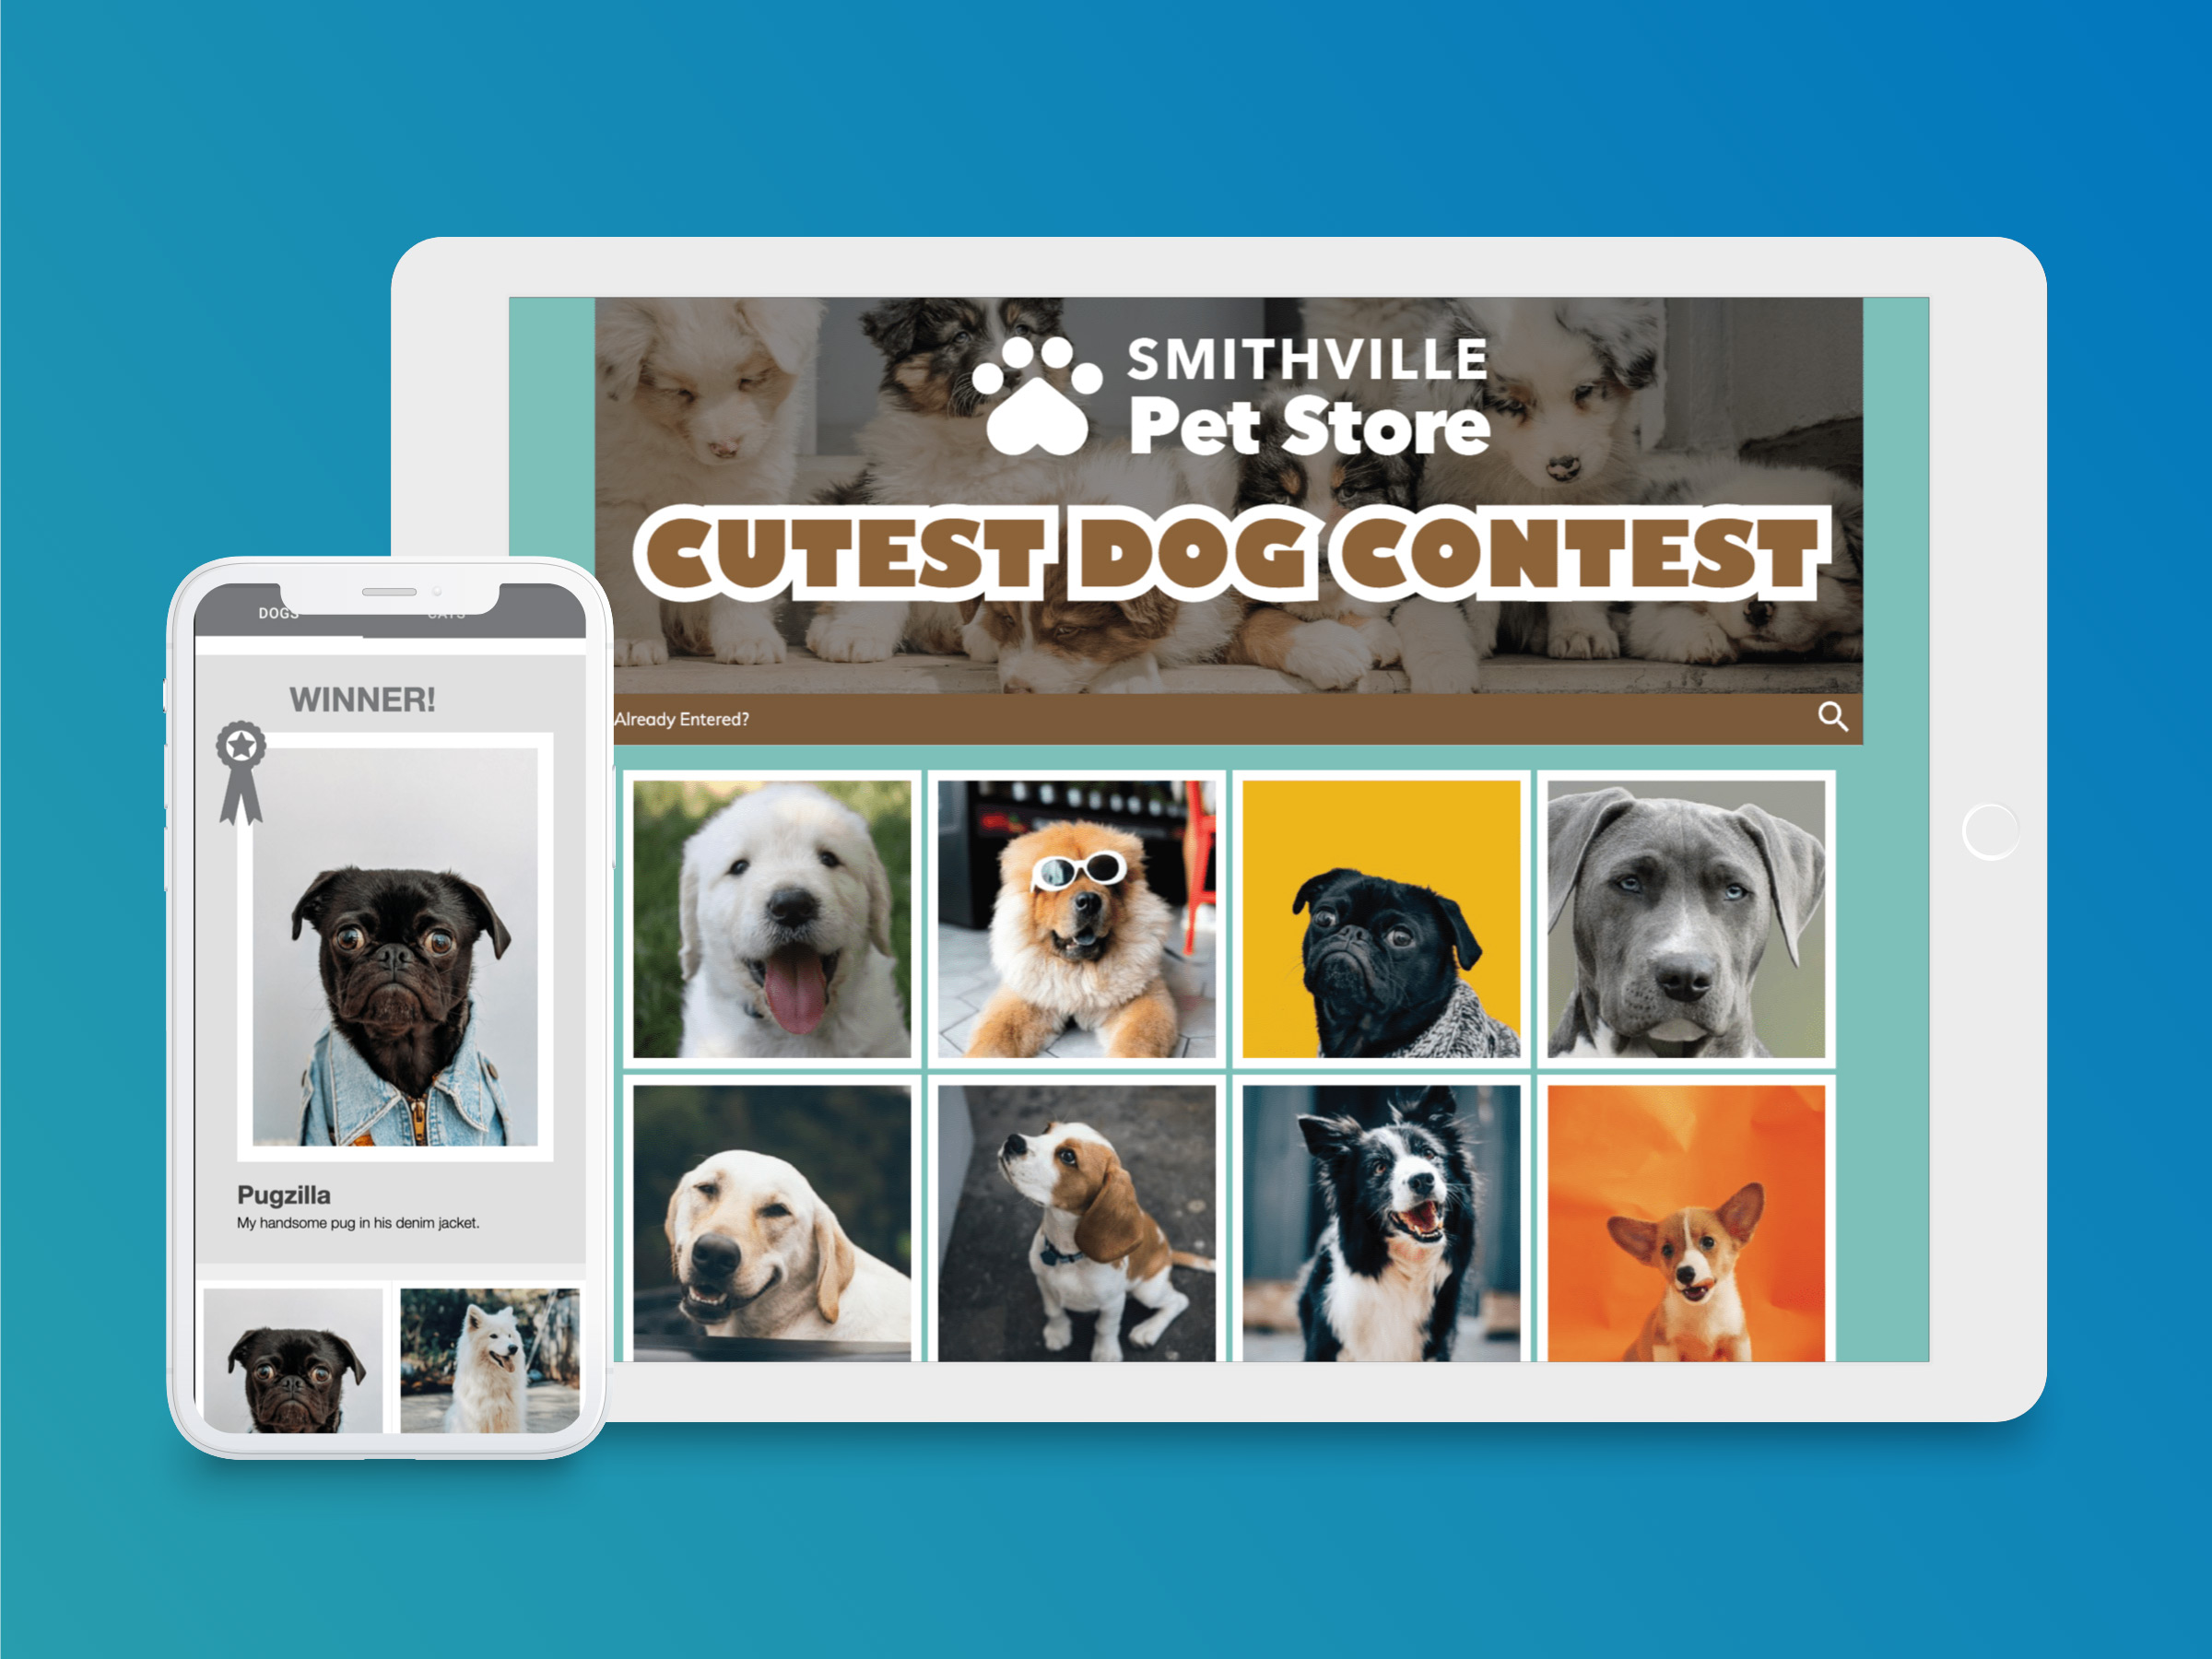 Cutest Dog Photo Contest sponsored by a pet store.